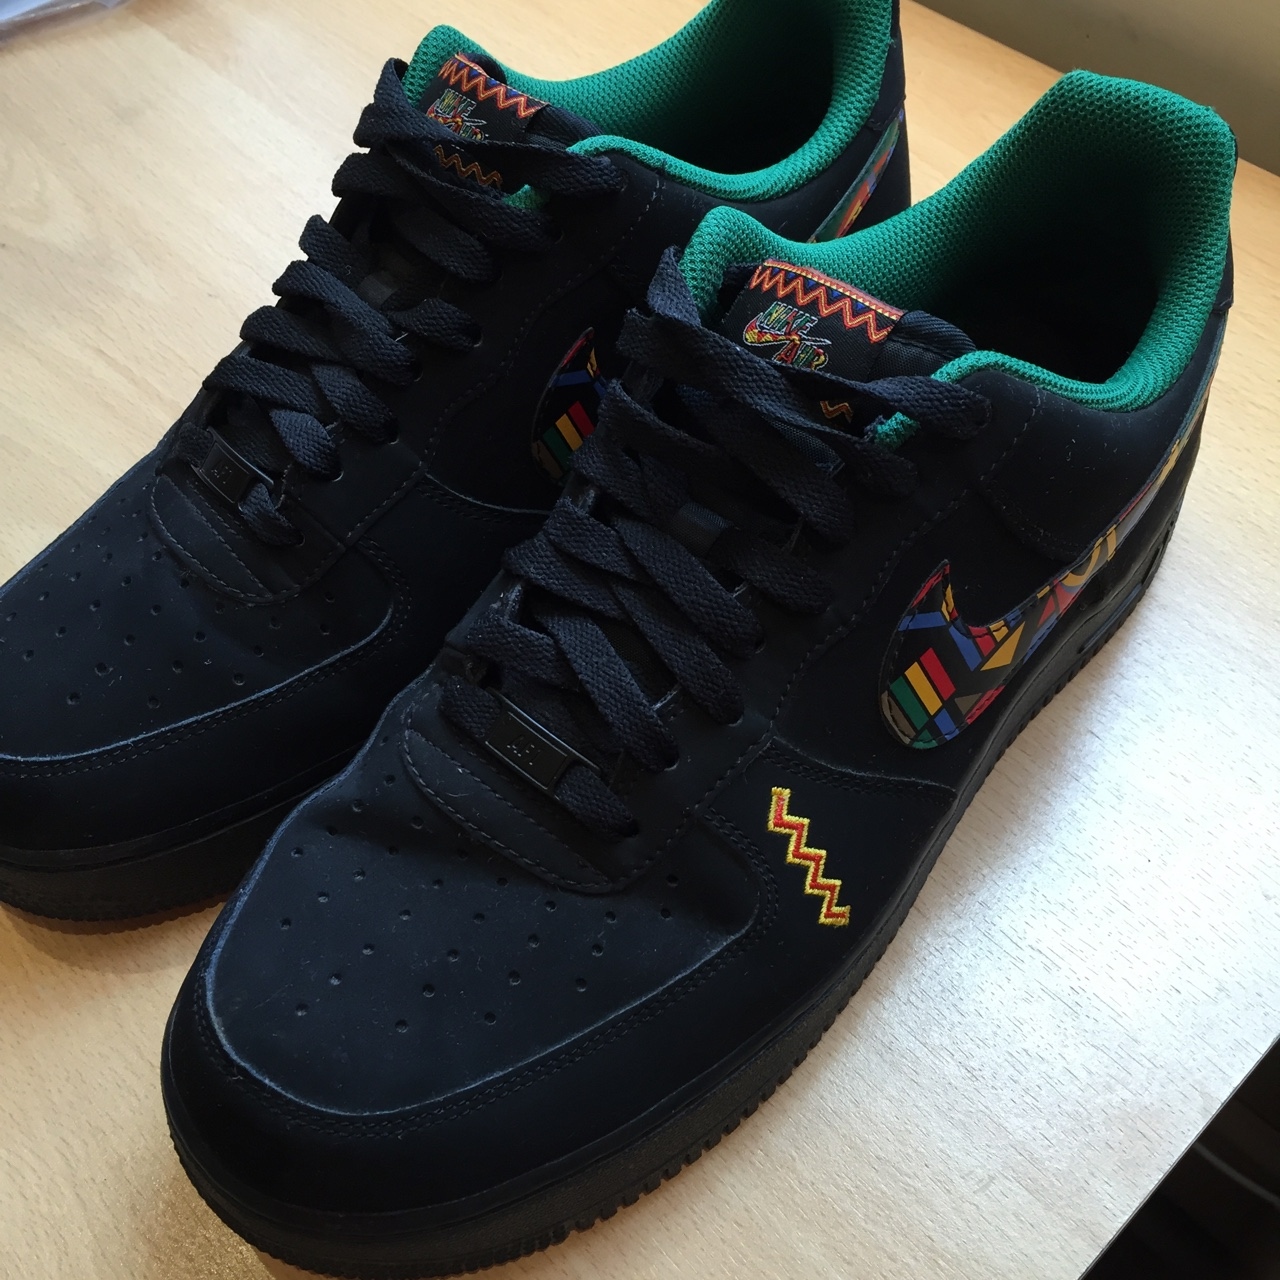 Gym With Peace Air Nike Force 1 Low Urban Jungle Depop mN8n0vwO